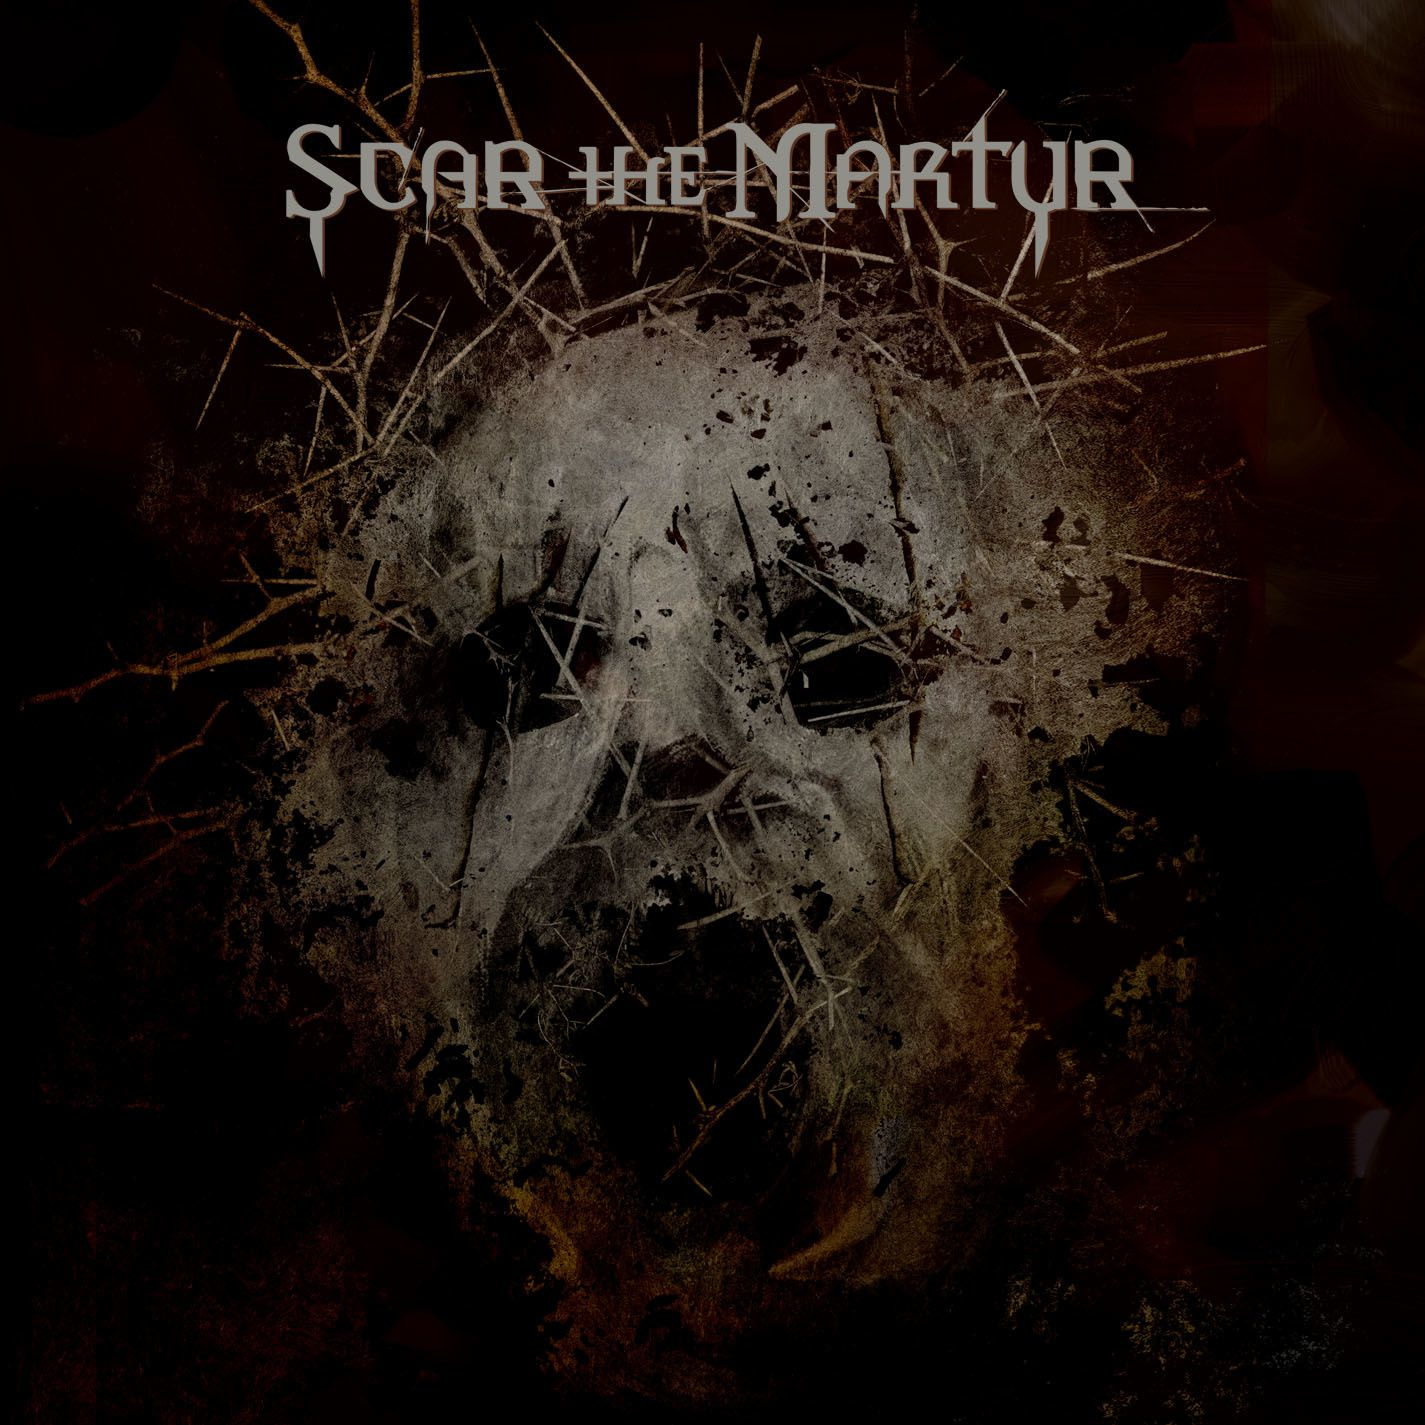 """CD review SCAR THE MARTYR """"Scar the martyr"""""""